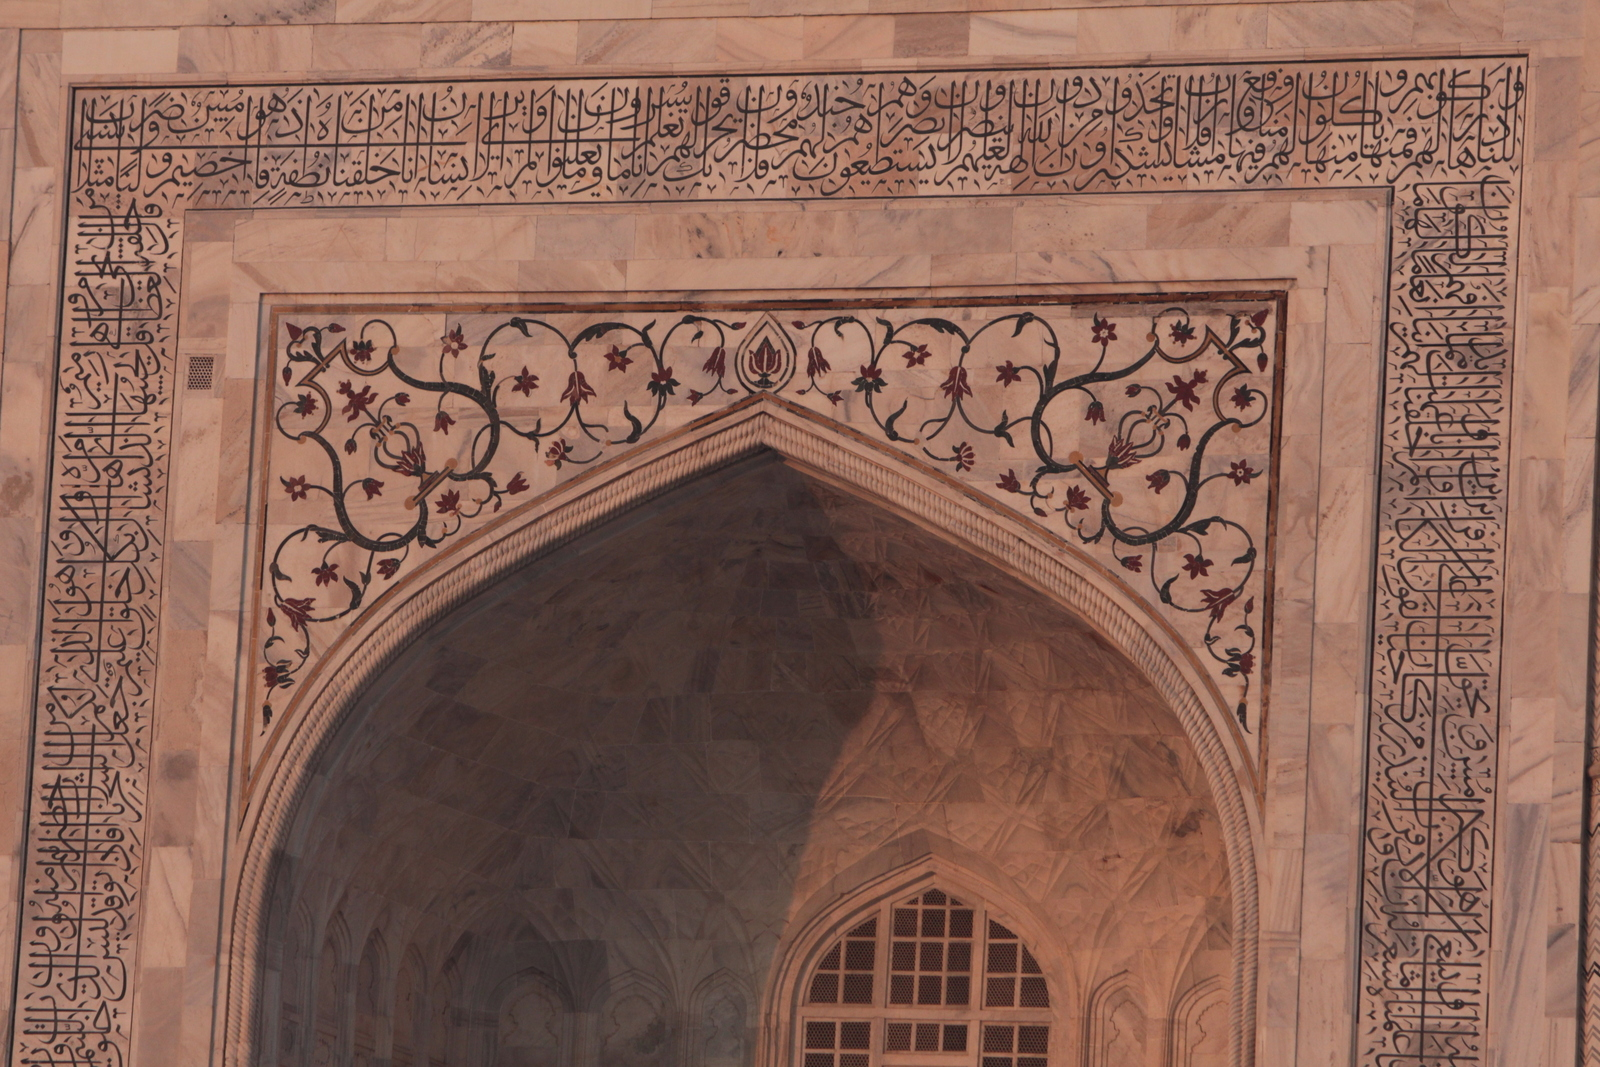 Much of the design on the building is Arabiccalligraphy, as seen over this doorway. If you look carefully, you can see that the lines are not a random pattern but in fact Arabic words.